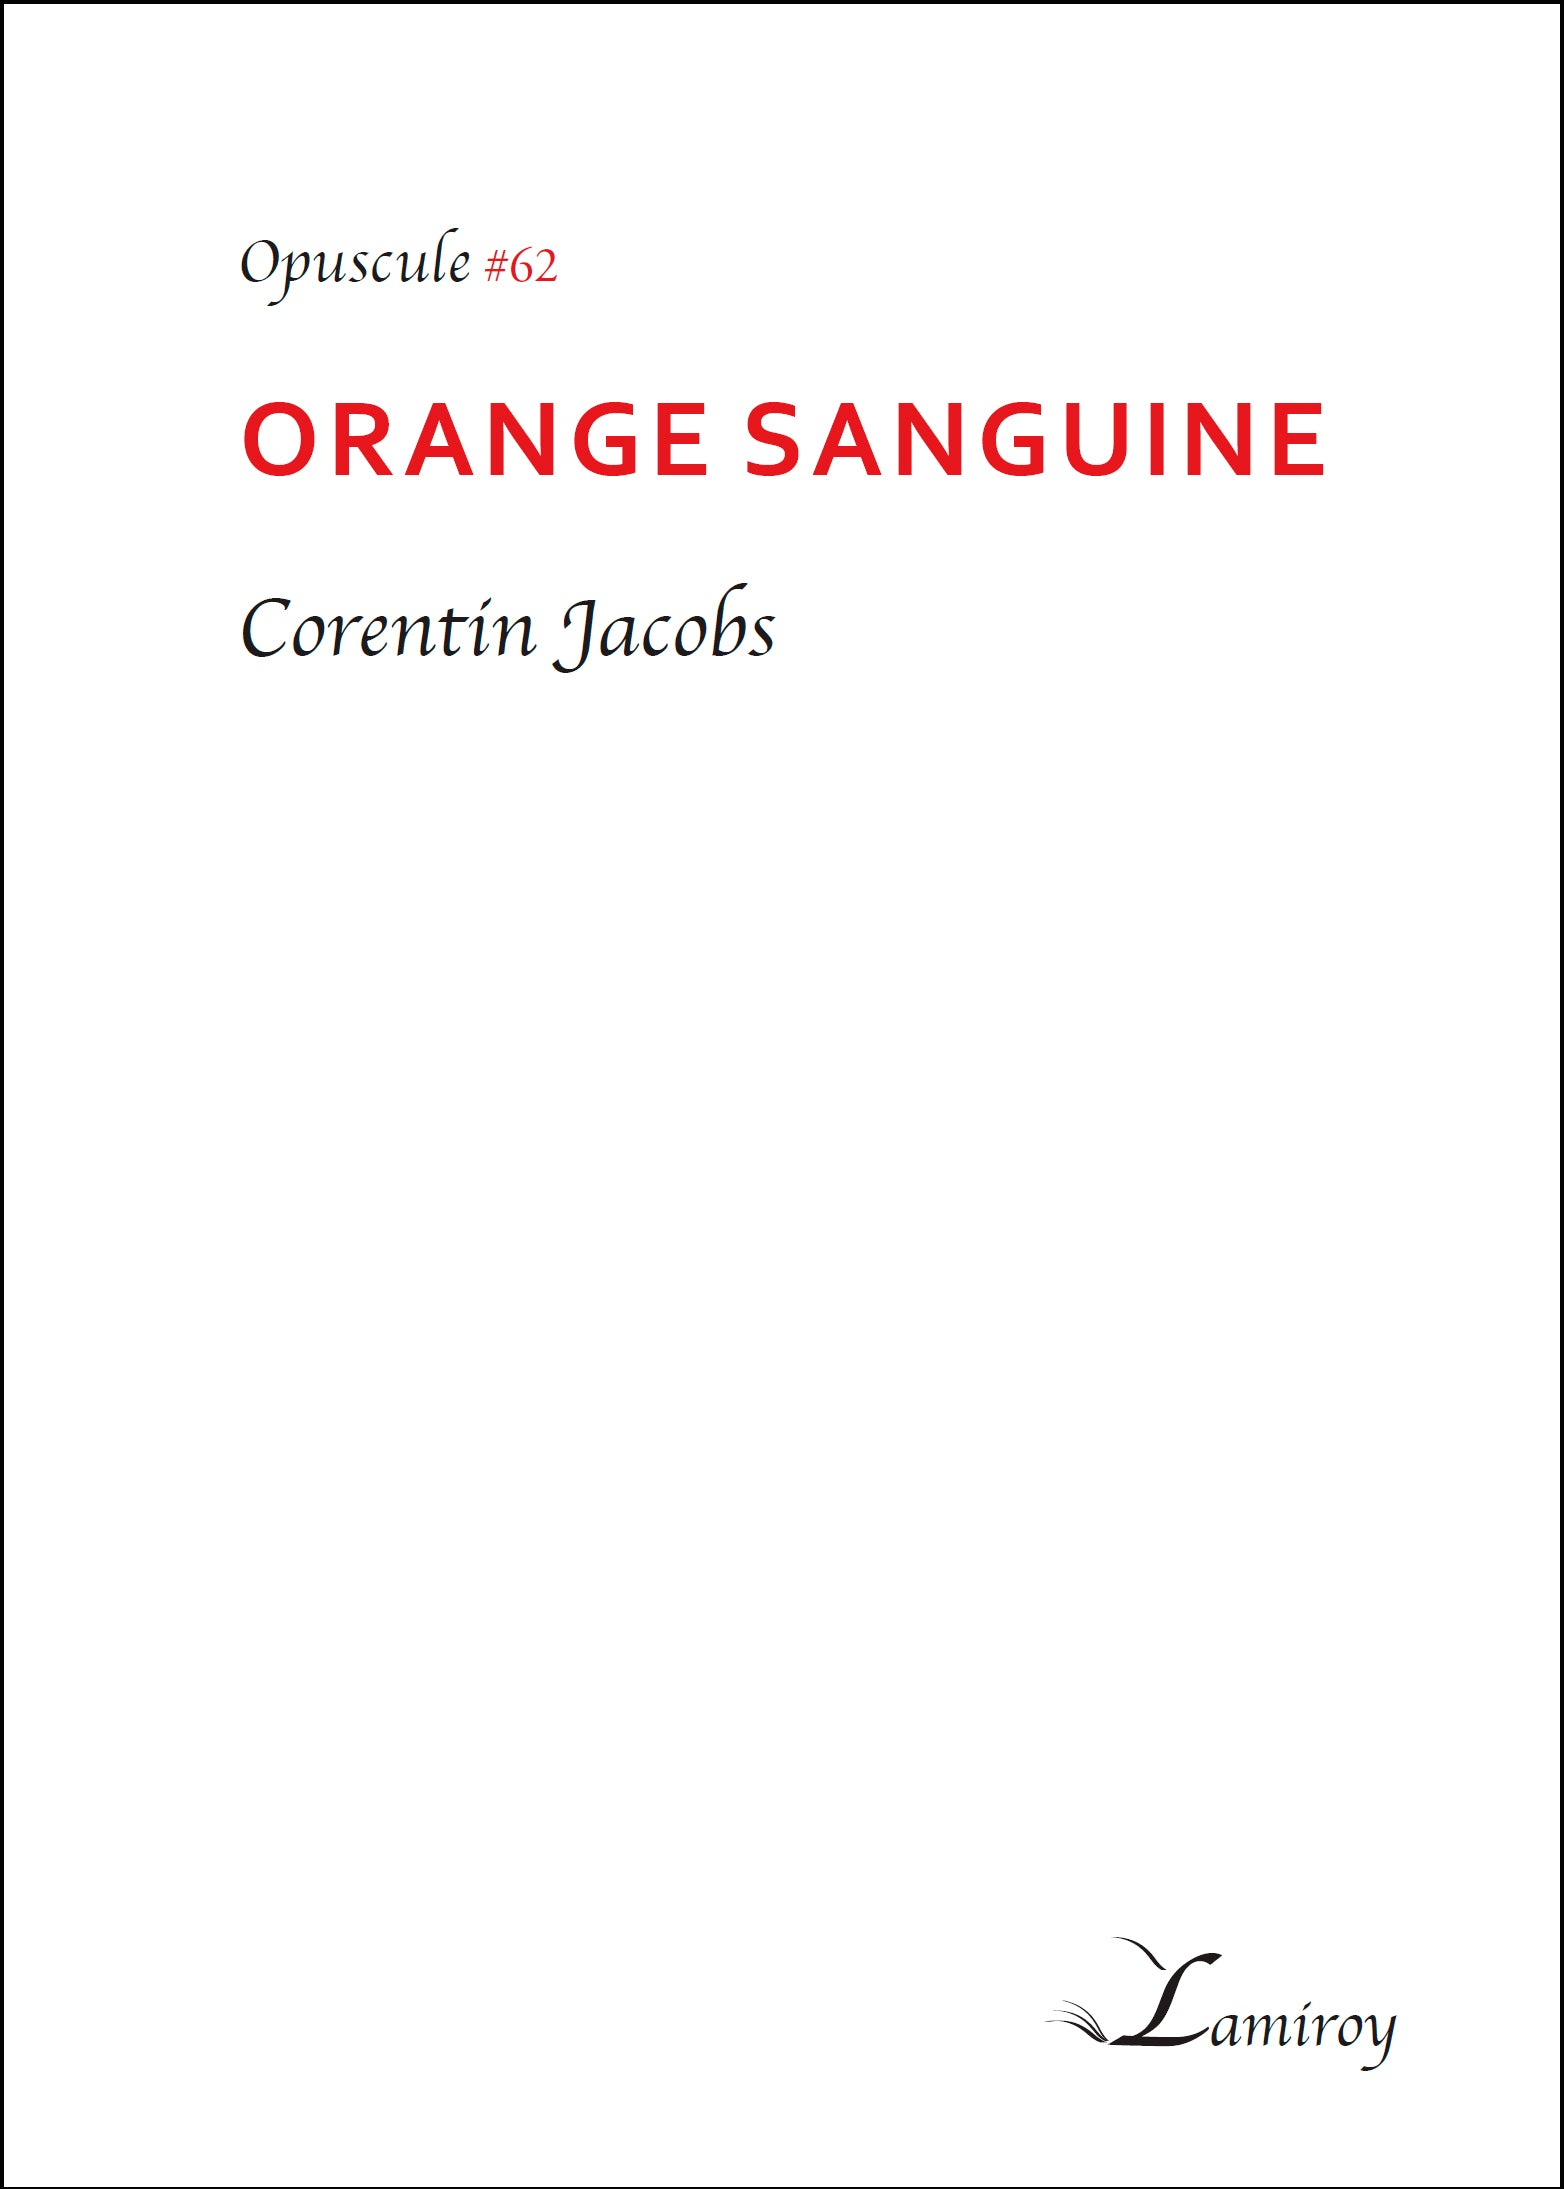 Orange Sanguine #62